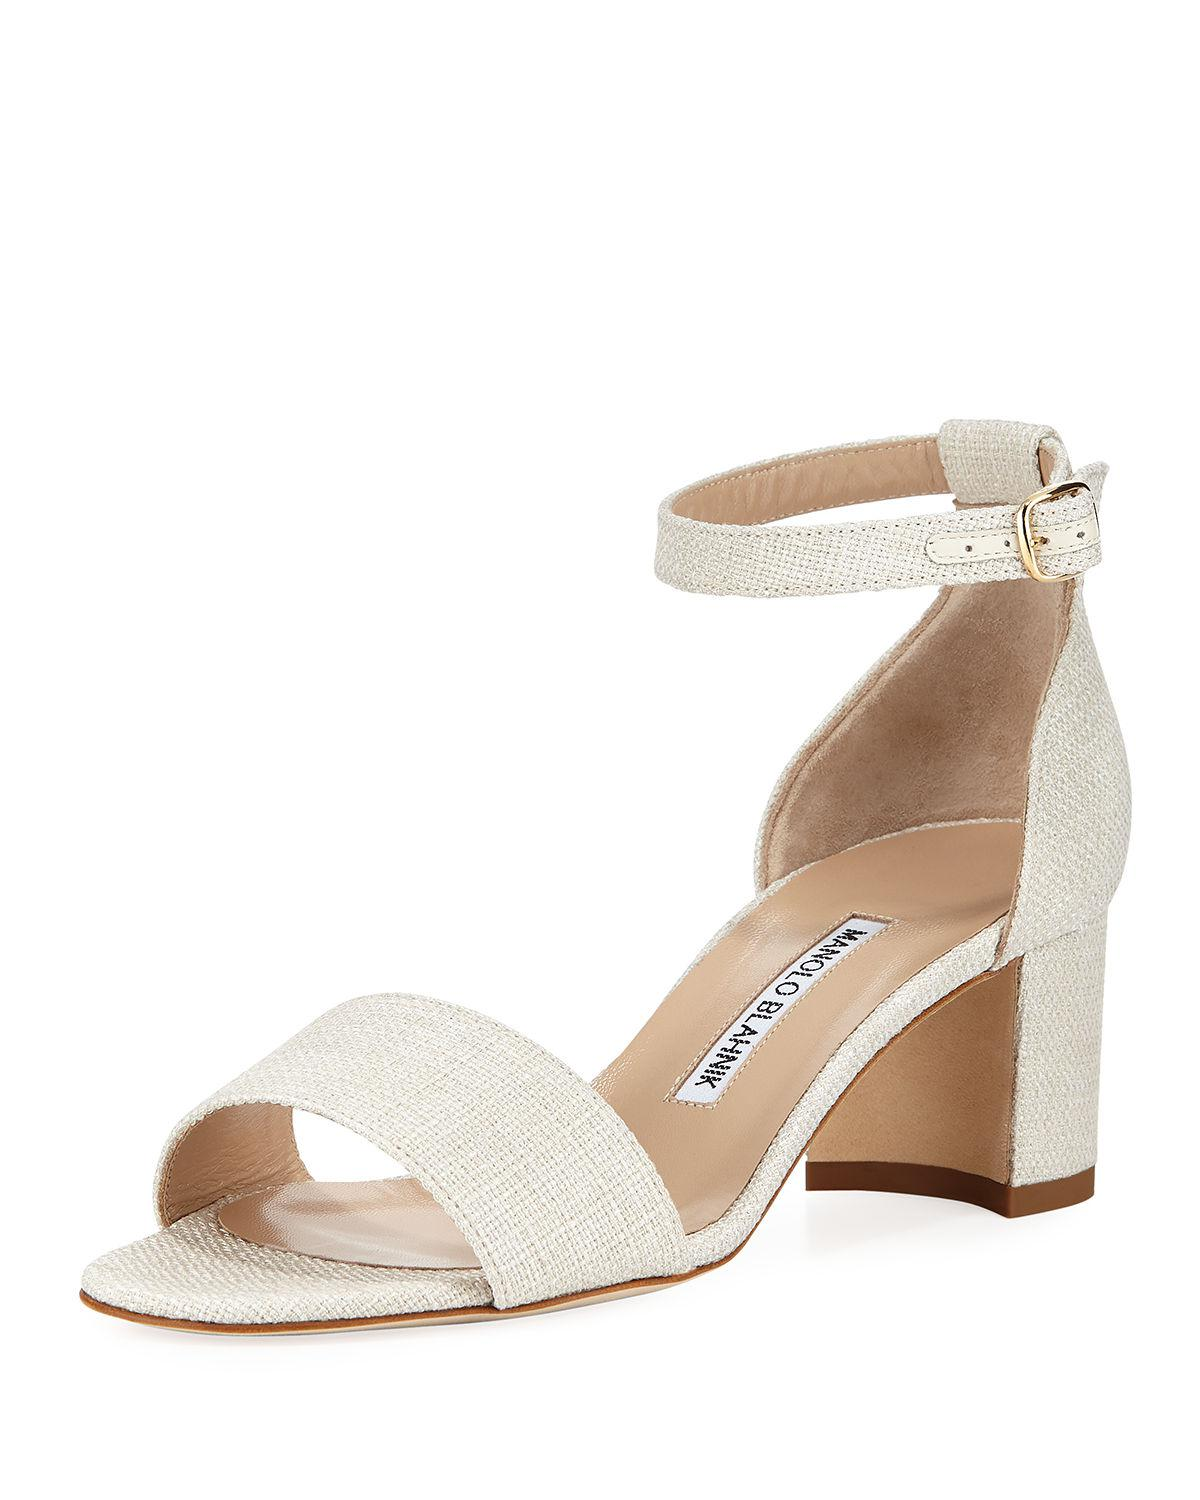 a5352bab14176 Manolo Blahnik Laura Tomod Linen Ankle Sandal in Natural - Lyst